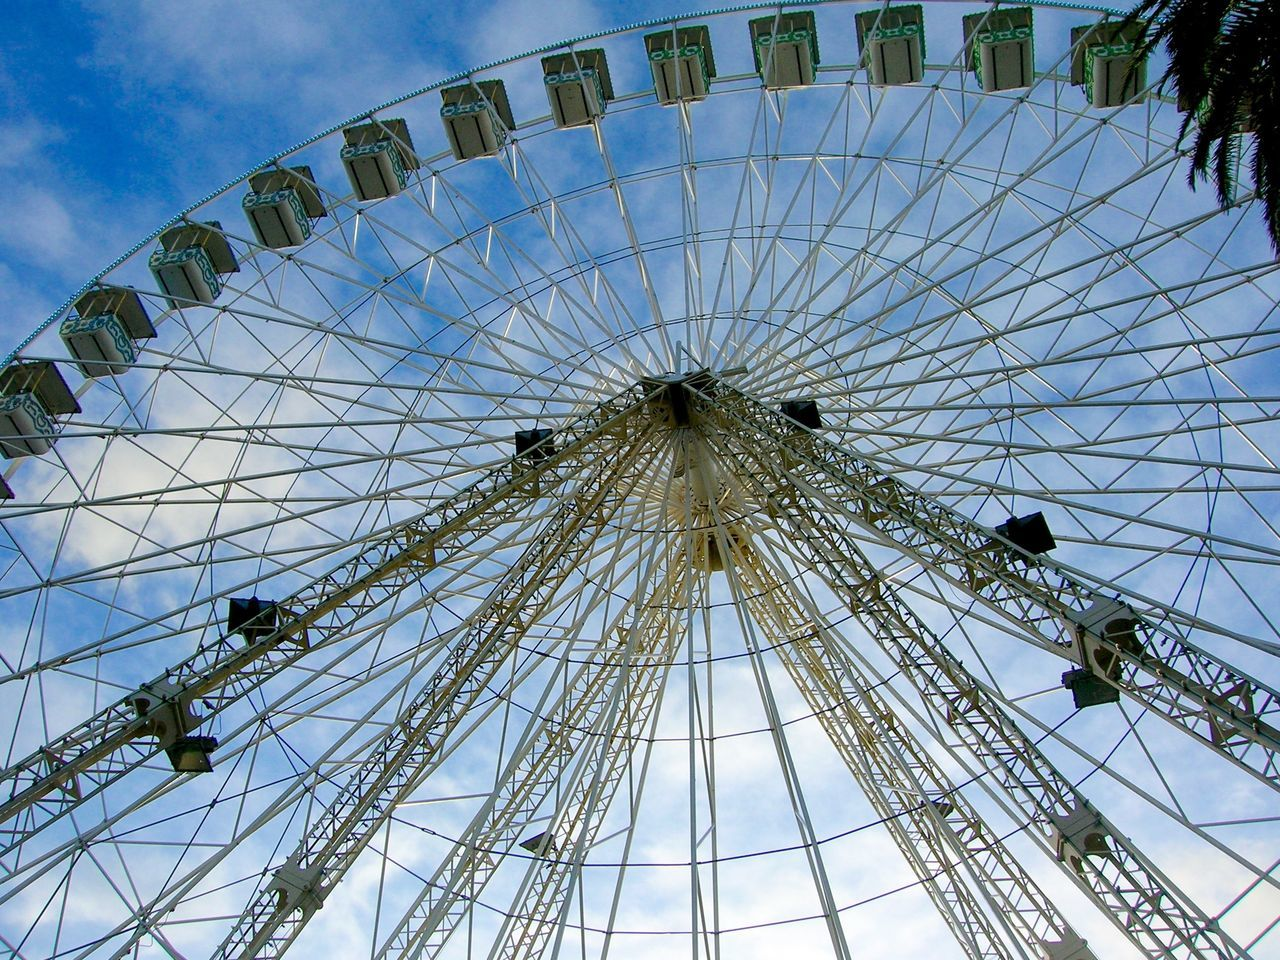 Amusement Park Ride Arts Culture And Entertainment Day Ferris Wheel Outdoors People Sky